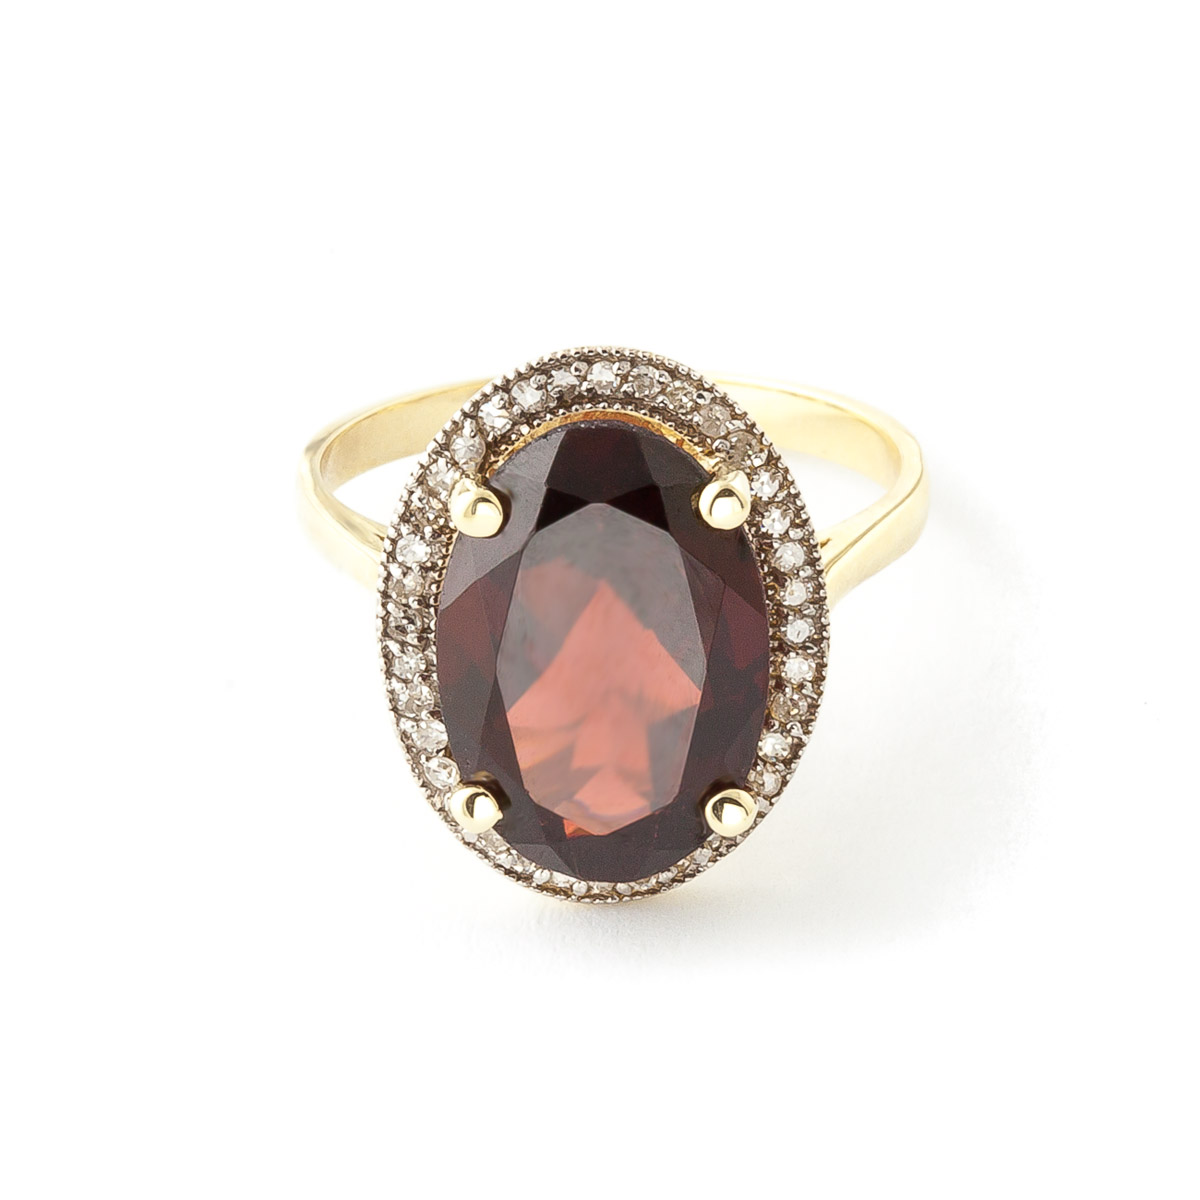 Garnet and Diamond Halo Ring 6.0ct in 9ct Gold